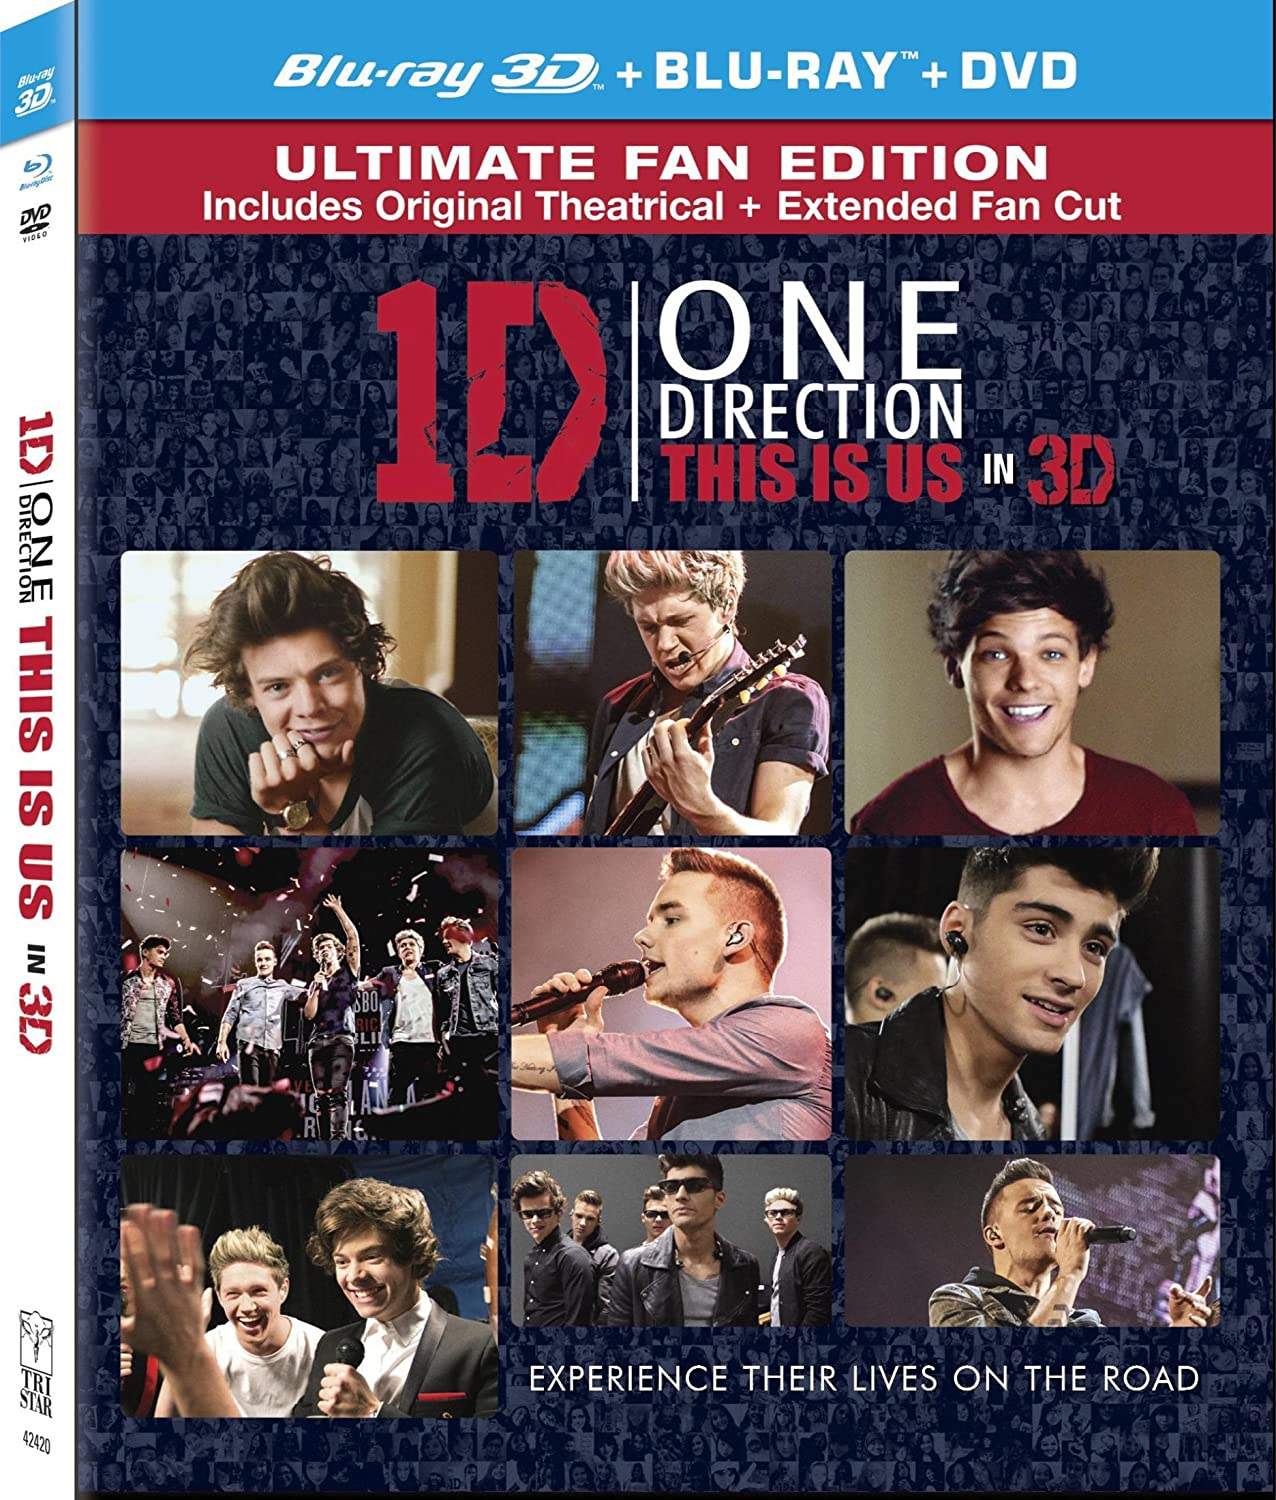 Uncategorized One Direction Games Online Free amazon com one direction this is us 3d two disc combo blu ray dvd ultraviolet digital copy jon shone dan richards s